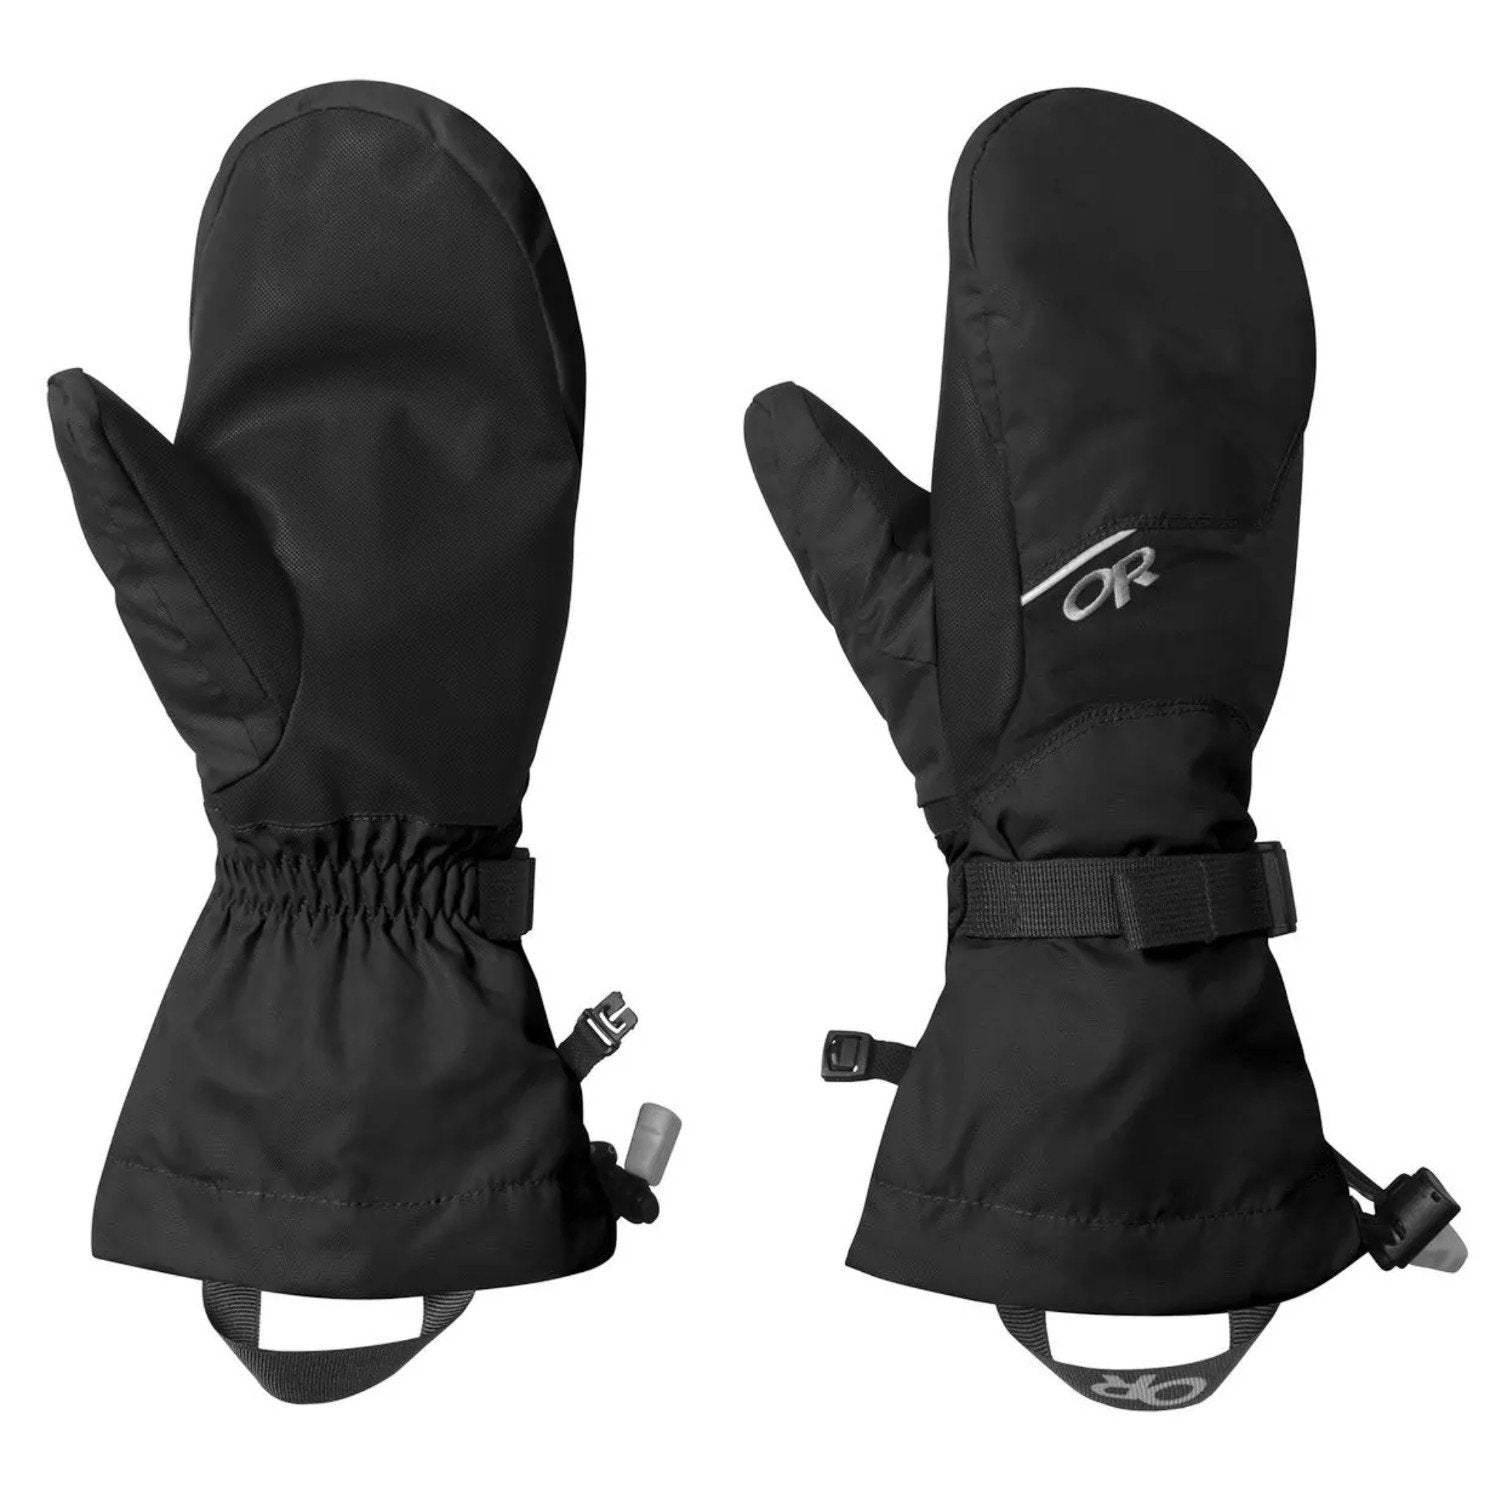 Pair of Outdoor Research Adrenaline Mitts shown side by side, front and reverse views in black